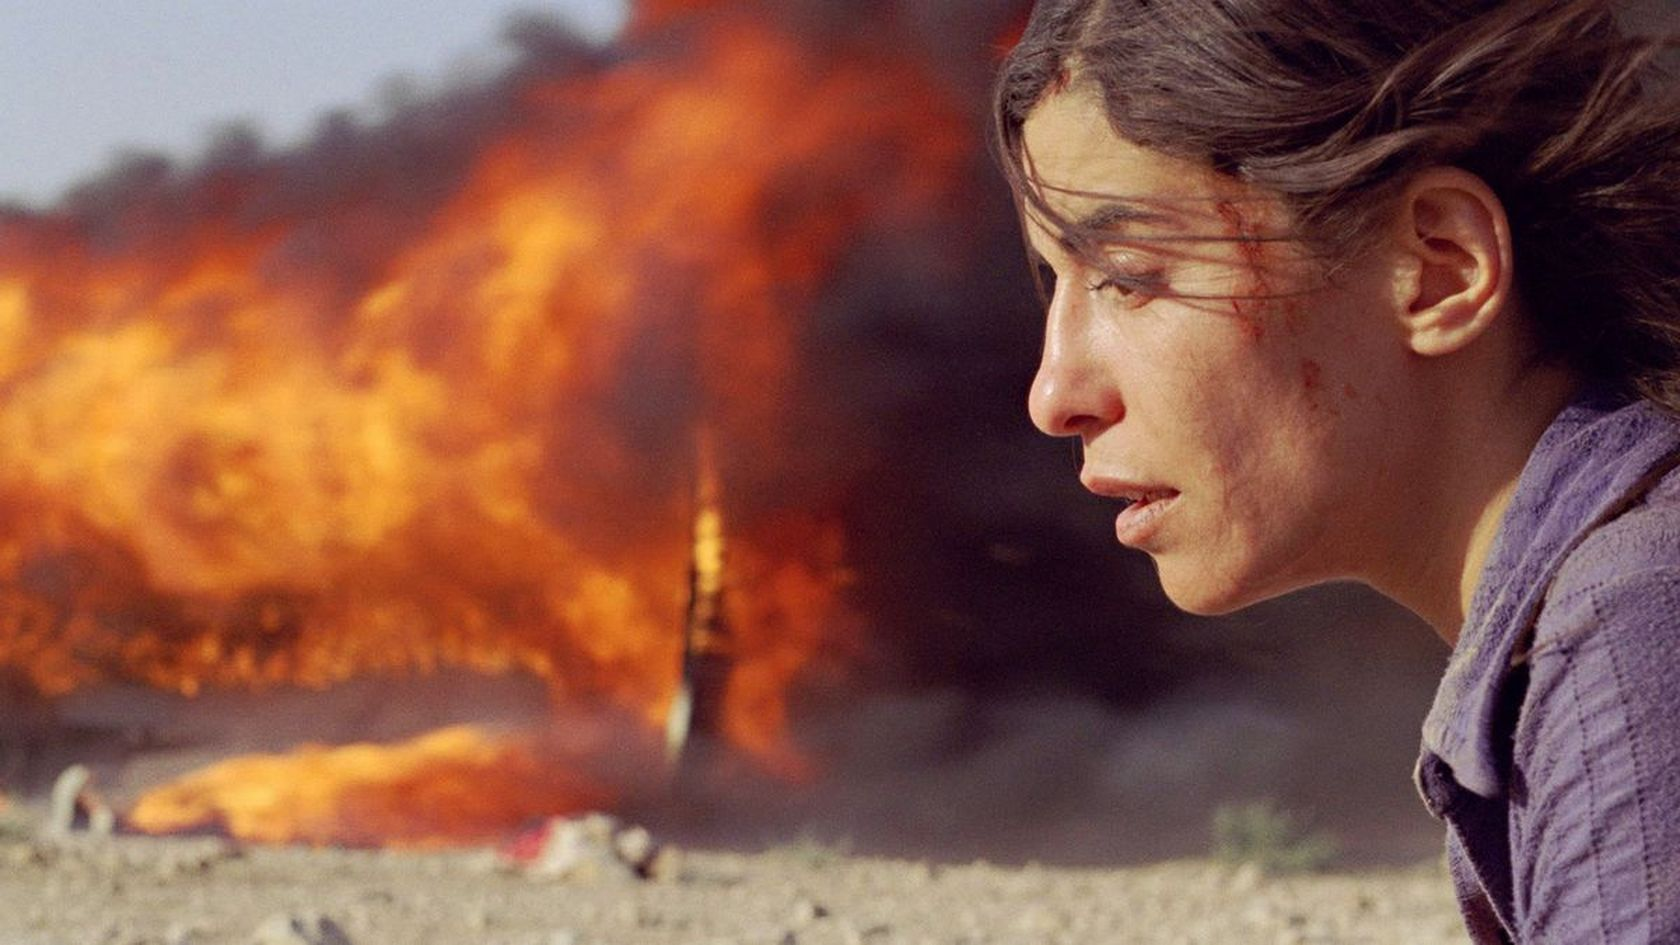 Incendies |